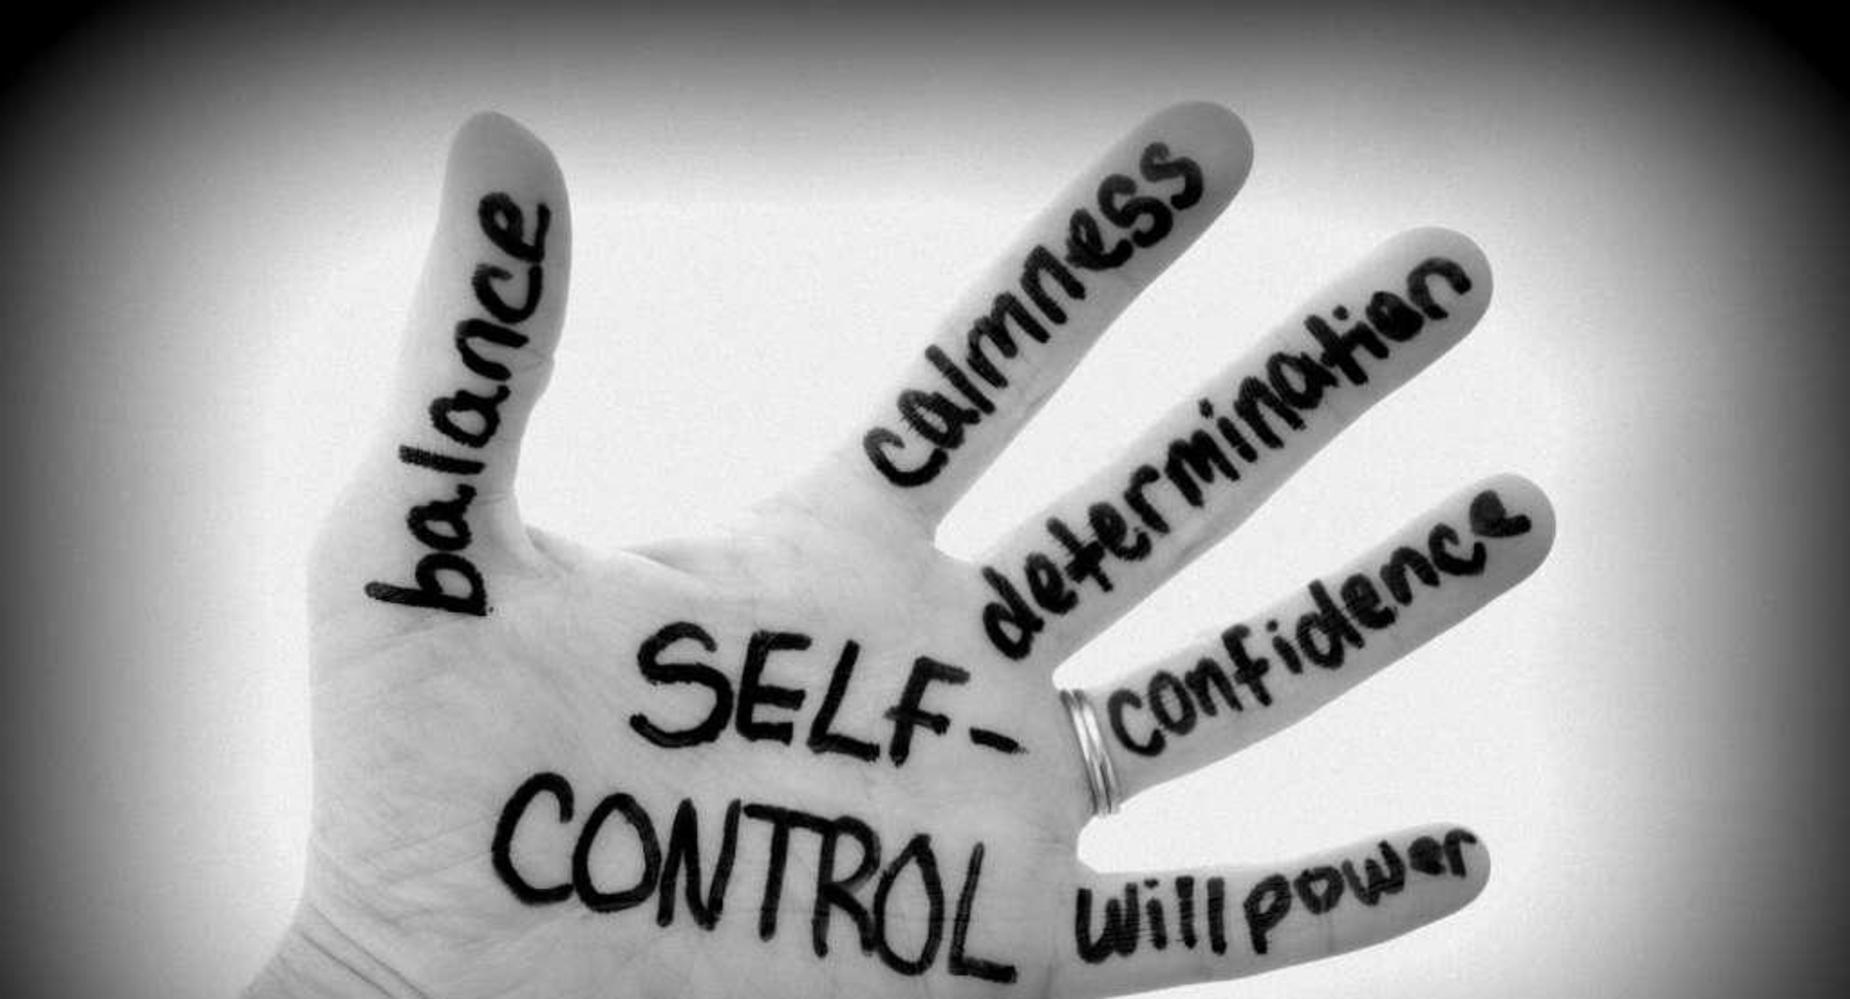 Self-Control Hand